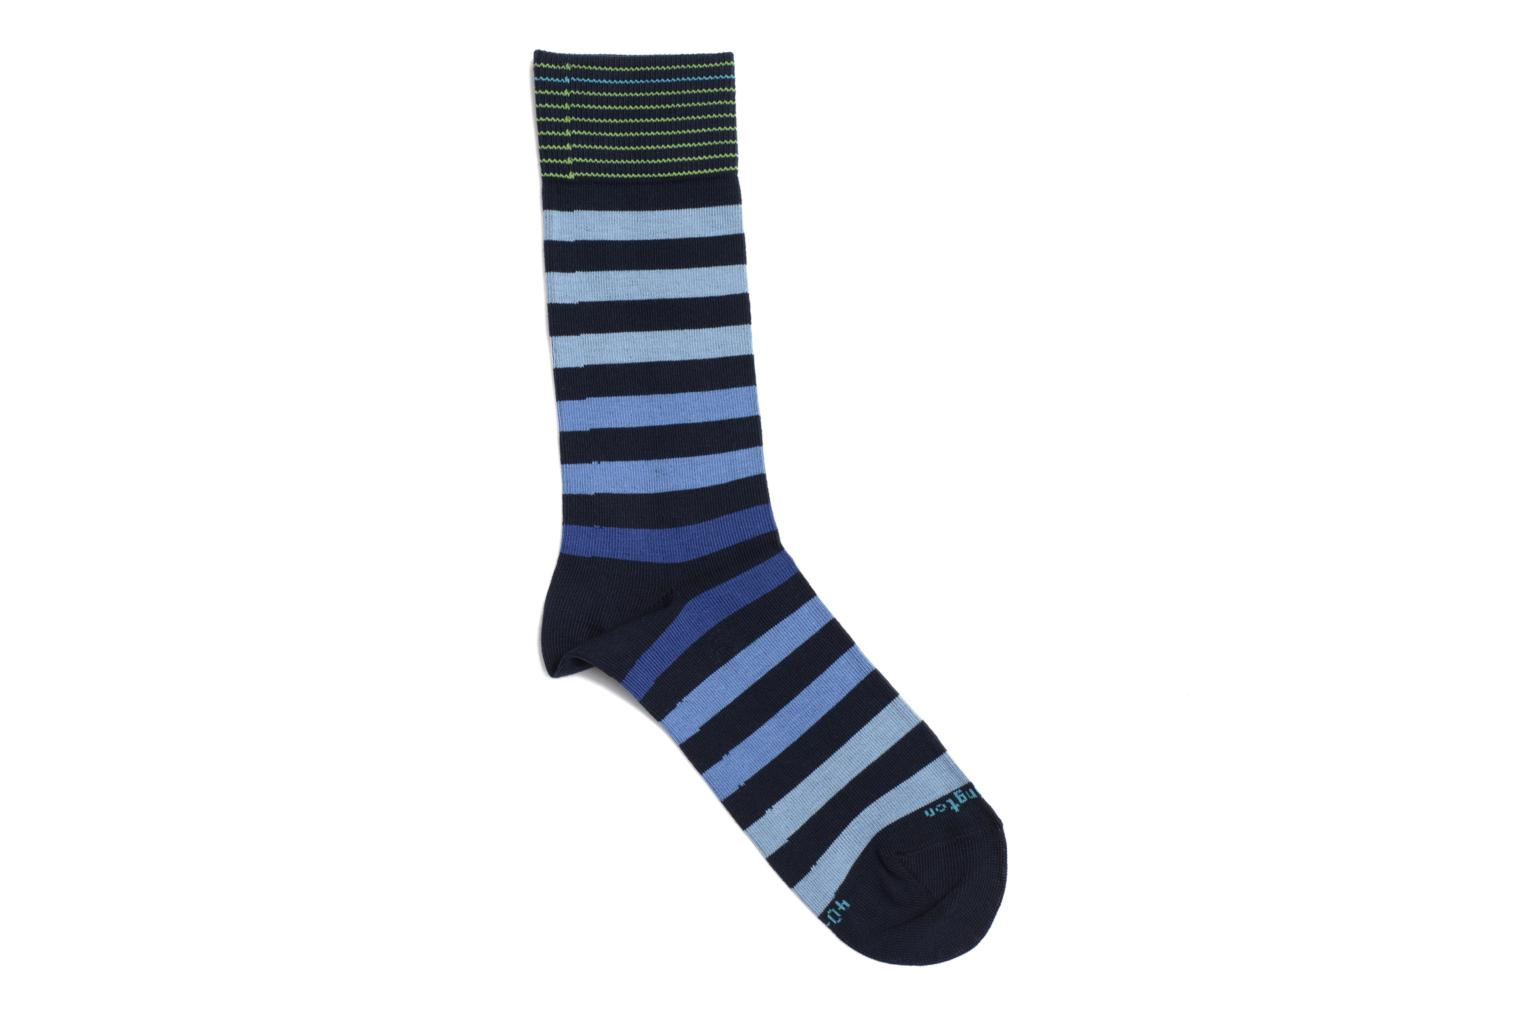 Chaussettes RAYEES 6120 marine